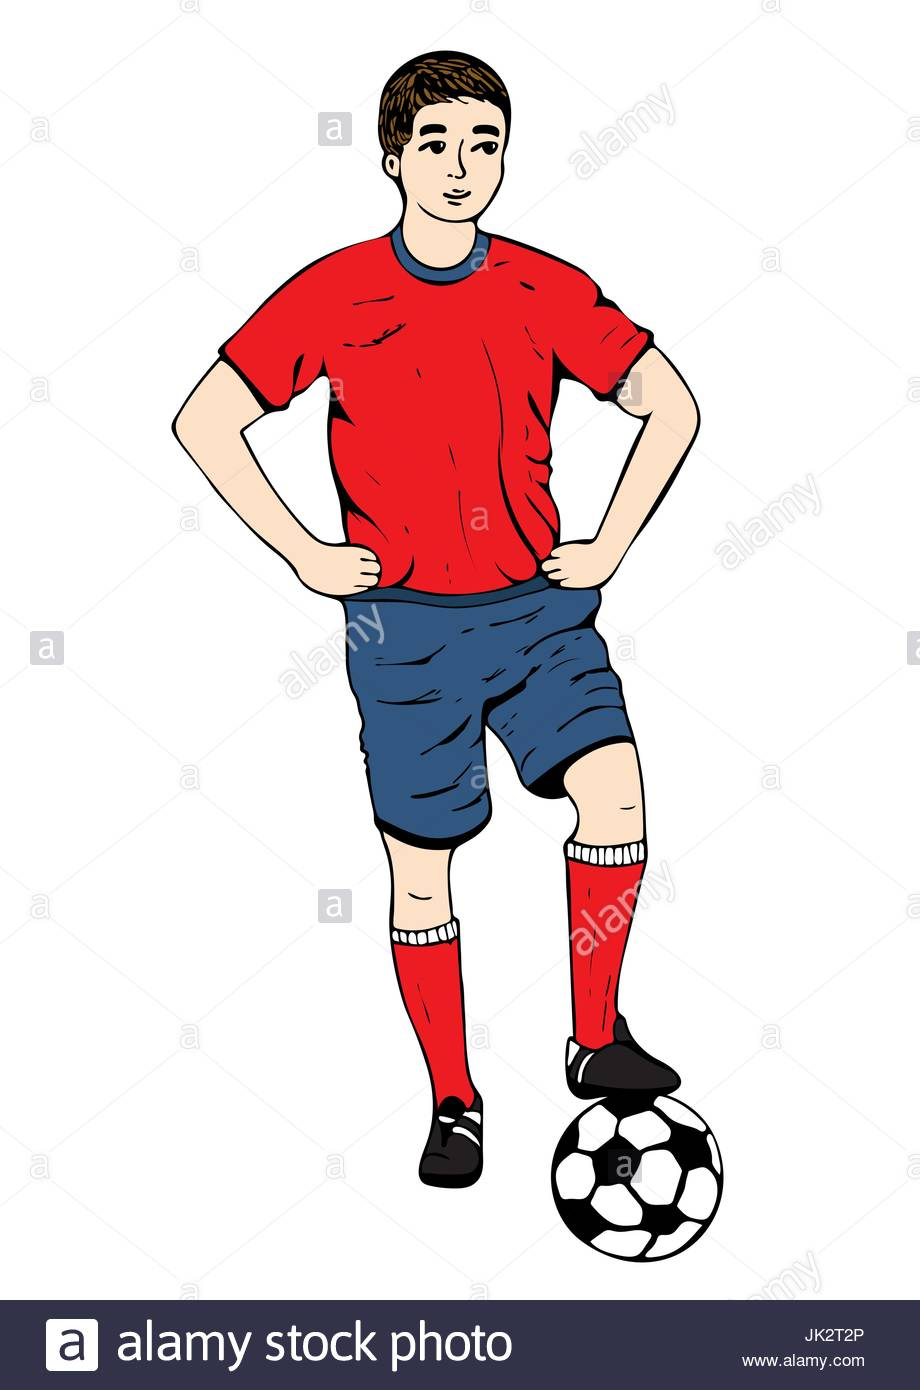 920x1390 Footballer, Vector Hand Drawing. Football Player In A Red Blue